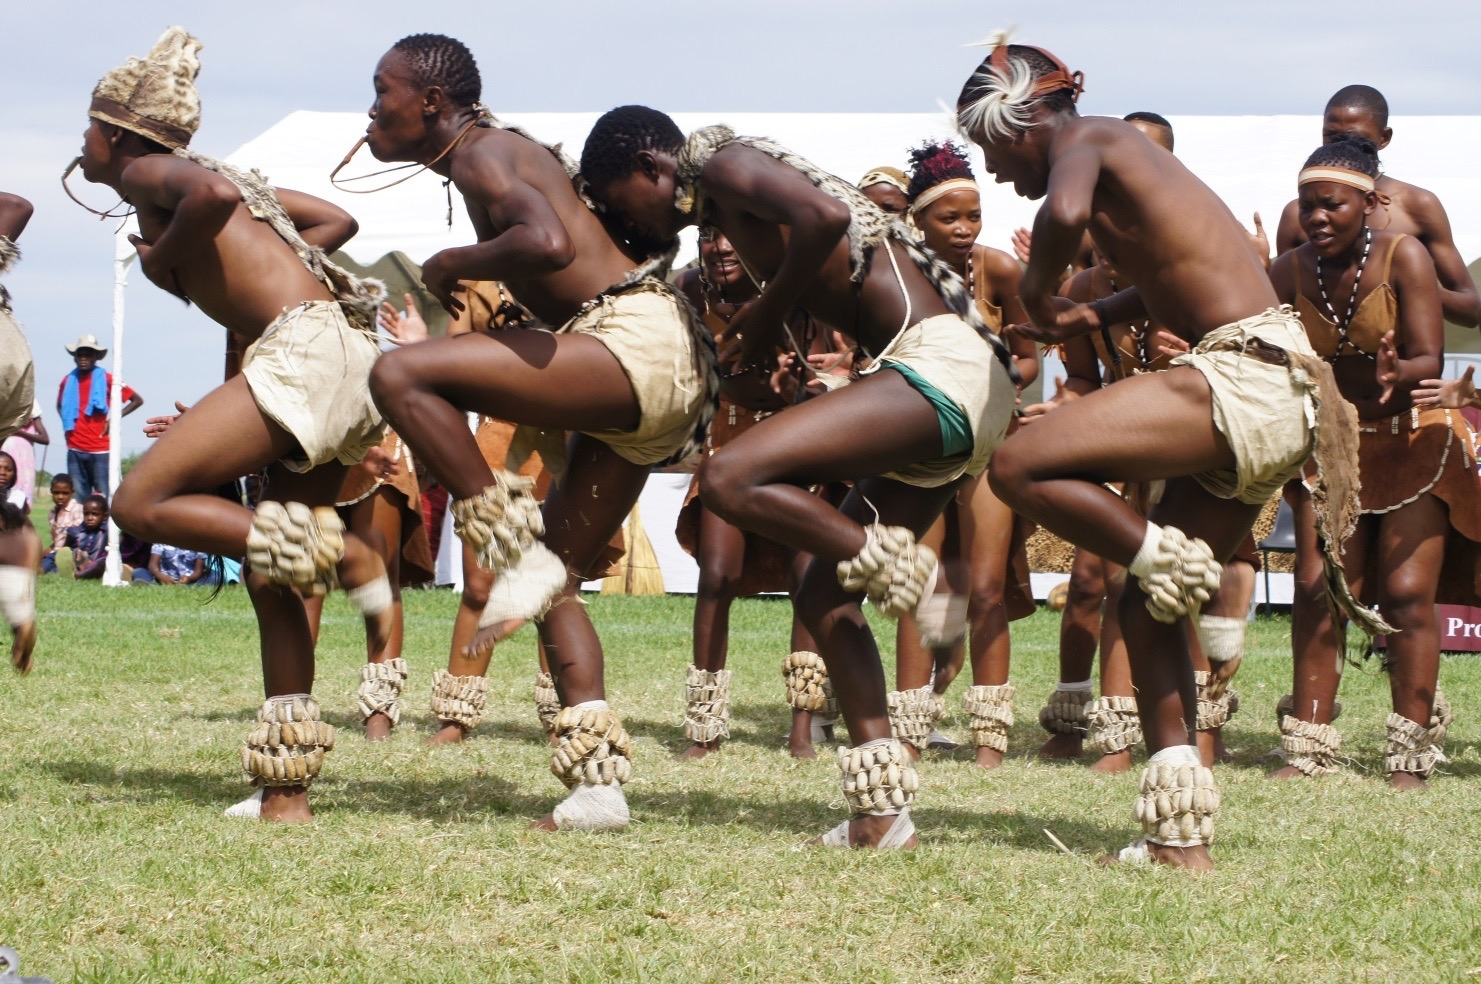 The Tswana Cultural Group performing at a national cultural festival in Grootfontein, Namibia.